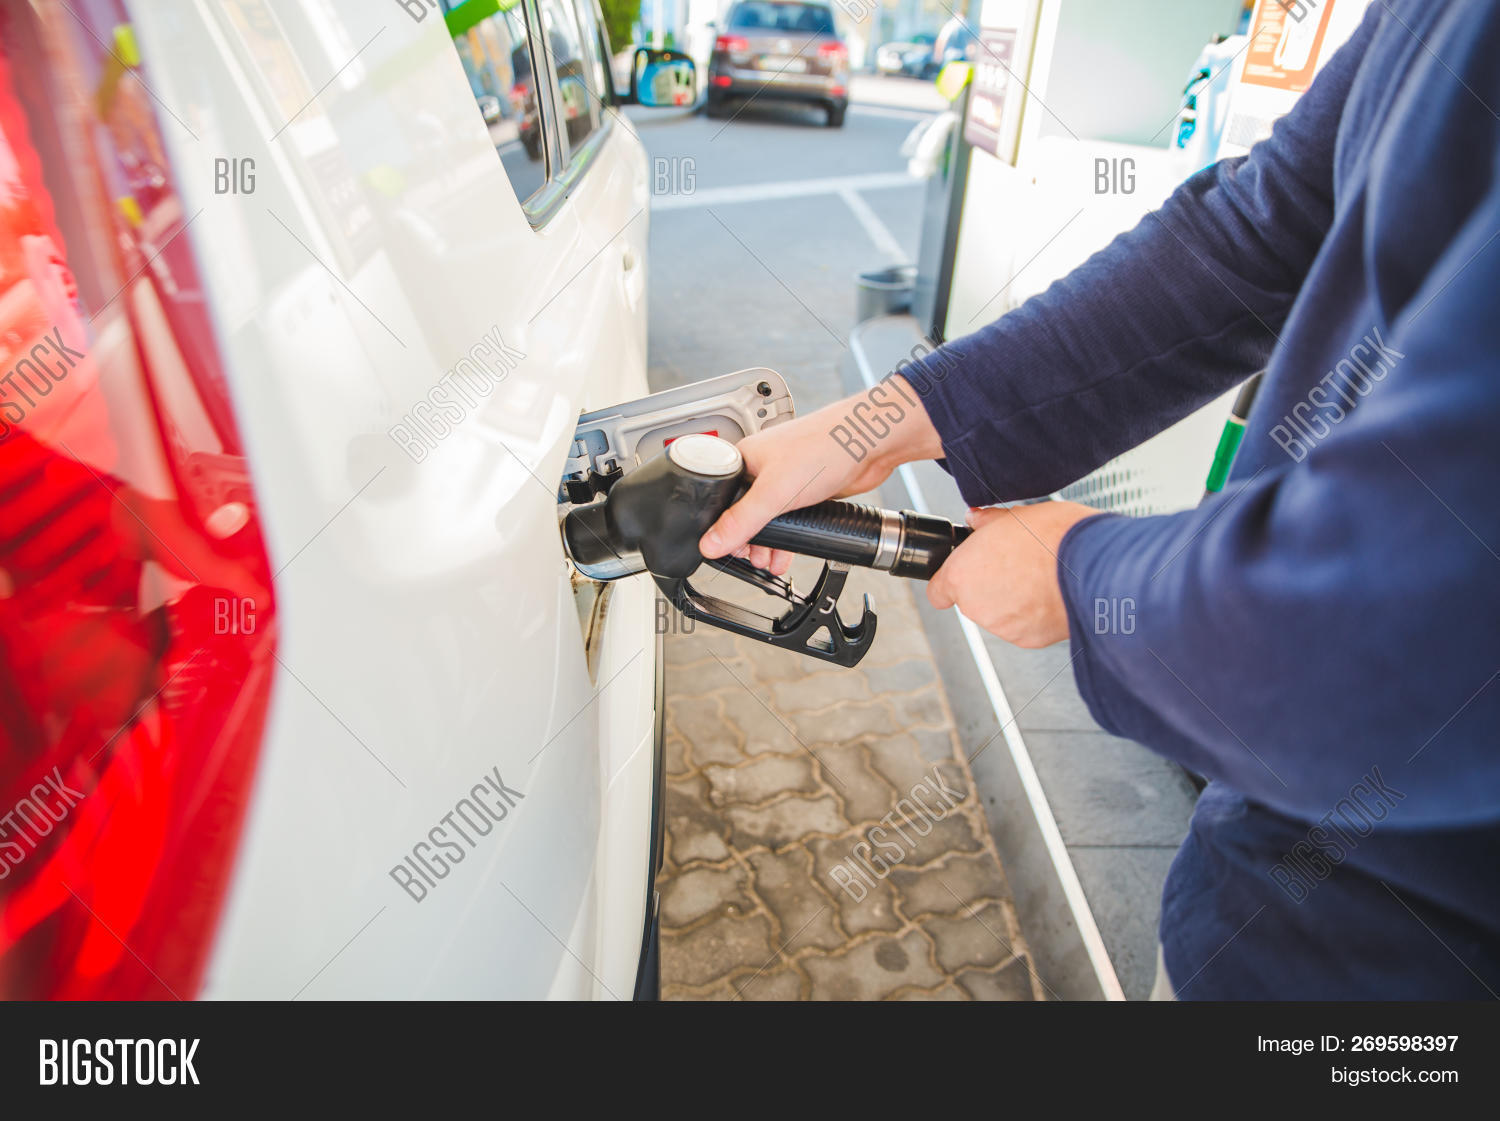 Gas Road Trip Refueling Car Gas Image Photo Free Trial Bigstock